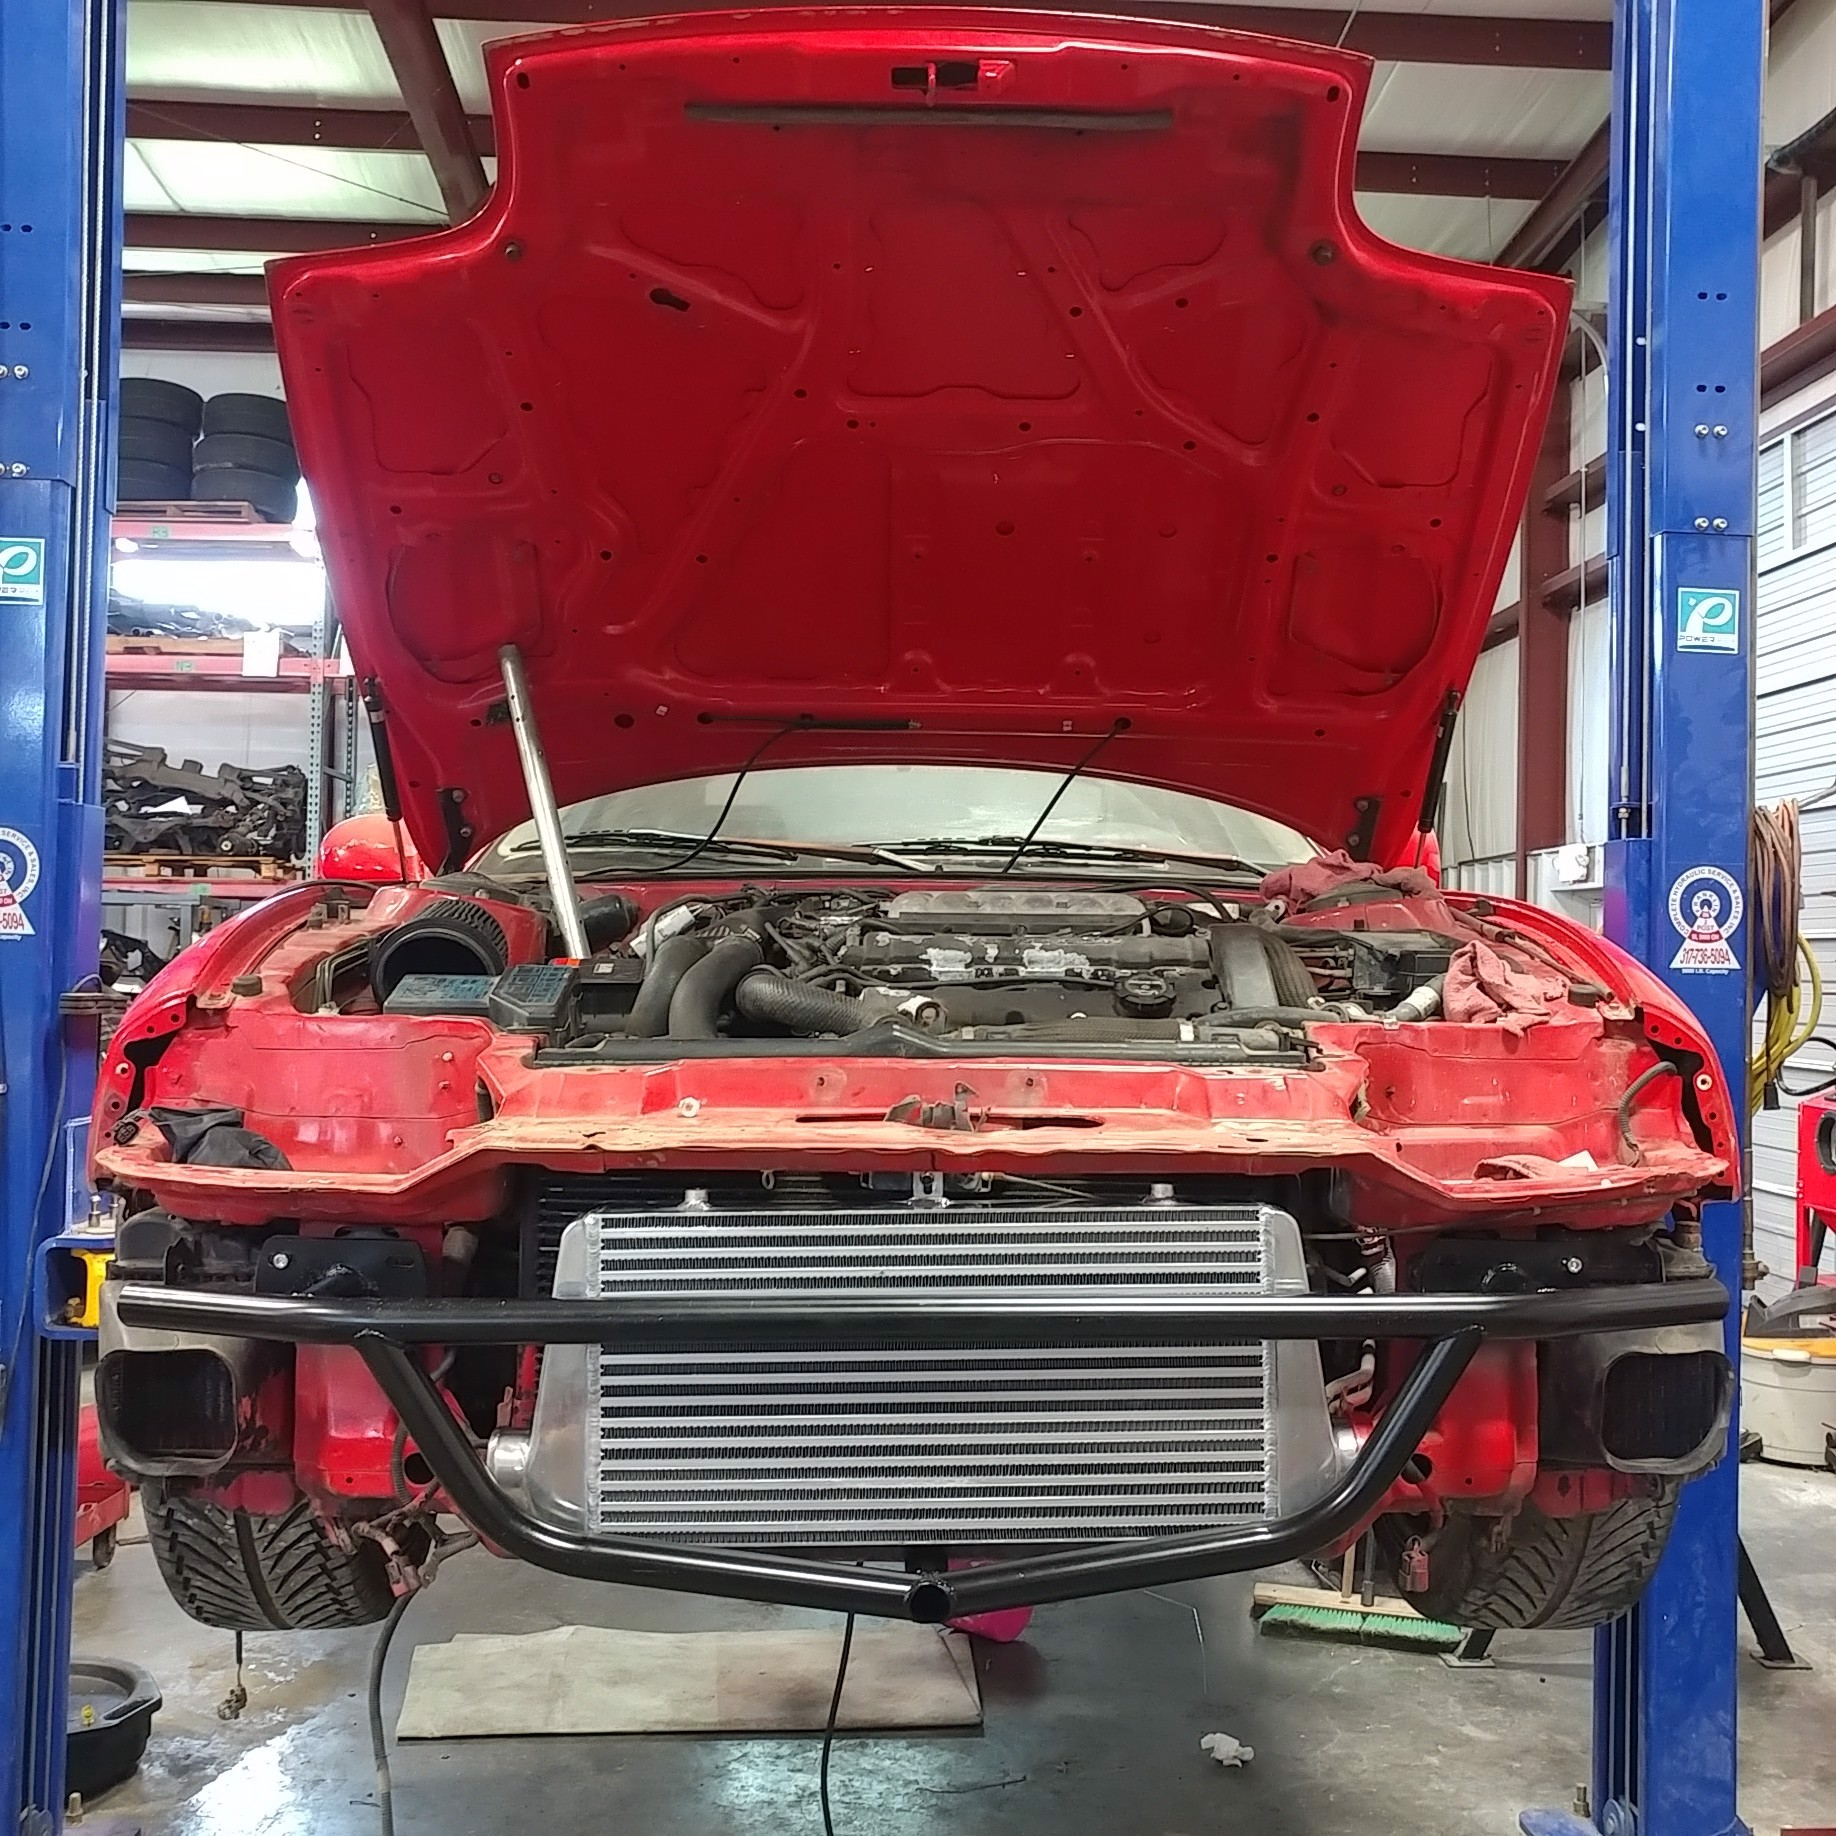 Picture of 3SX Front Crash Bar with InterCooler Mounts and Lower Brace